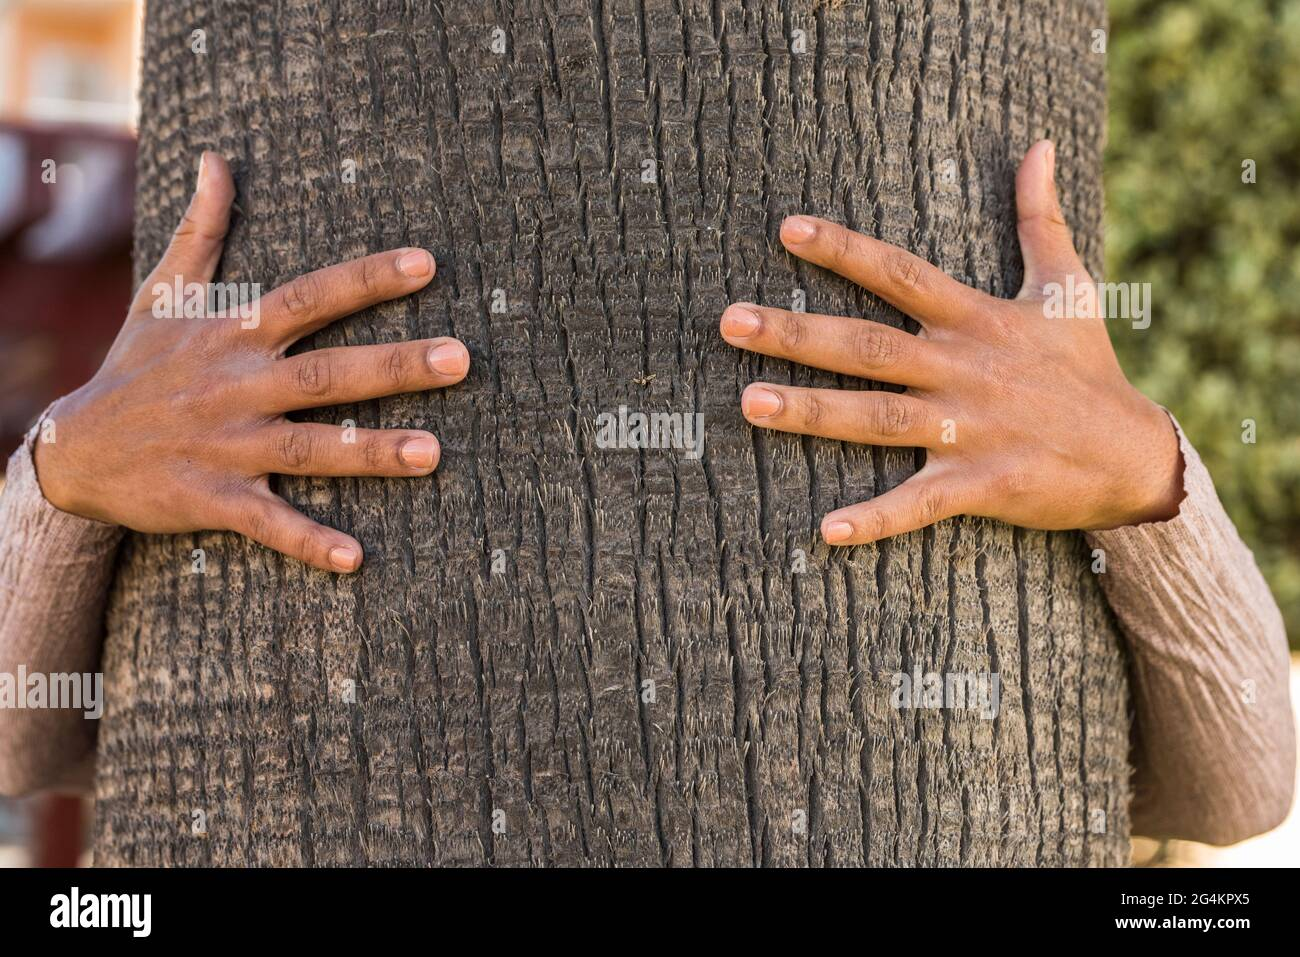 Hands hugging and protecting palm tree - nature environment safe protection concept - trunk trees close up and human embracing Stock Photo